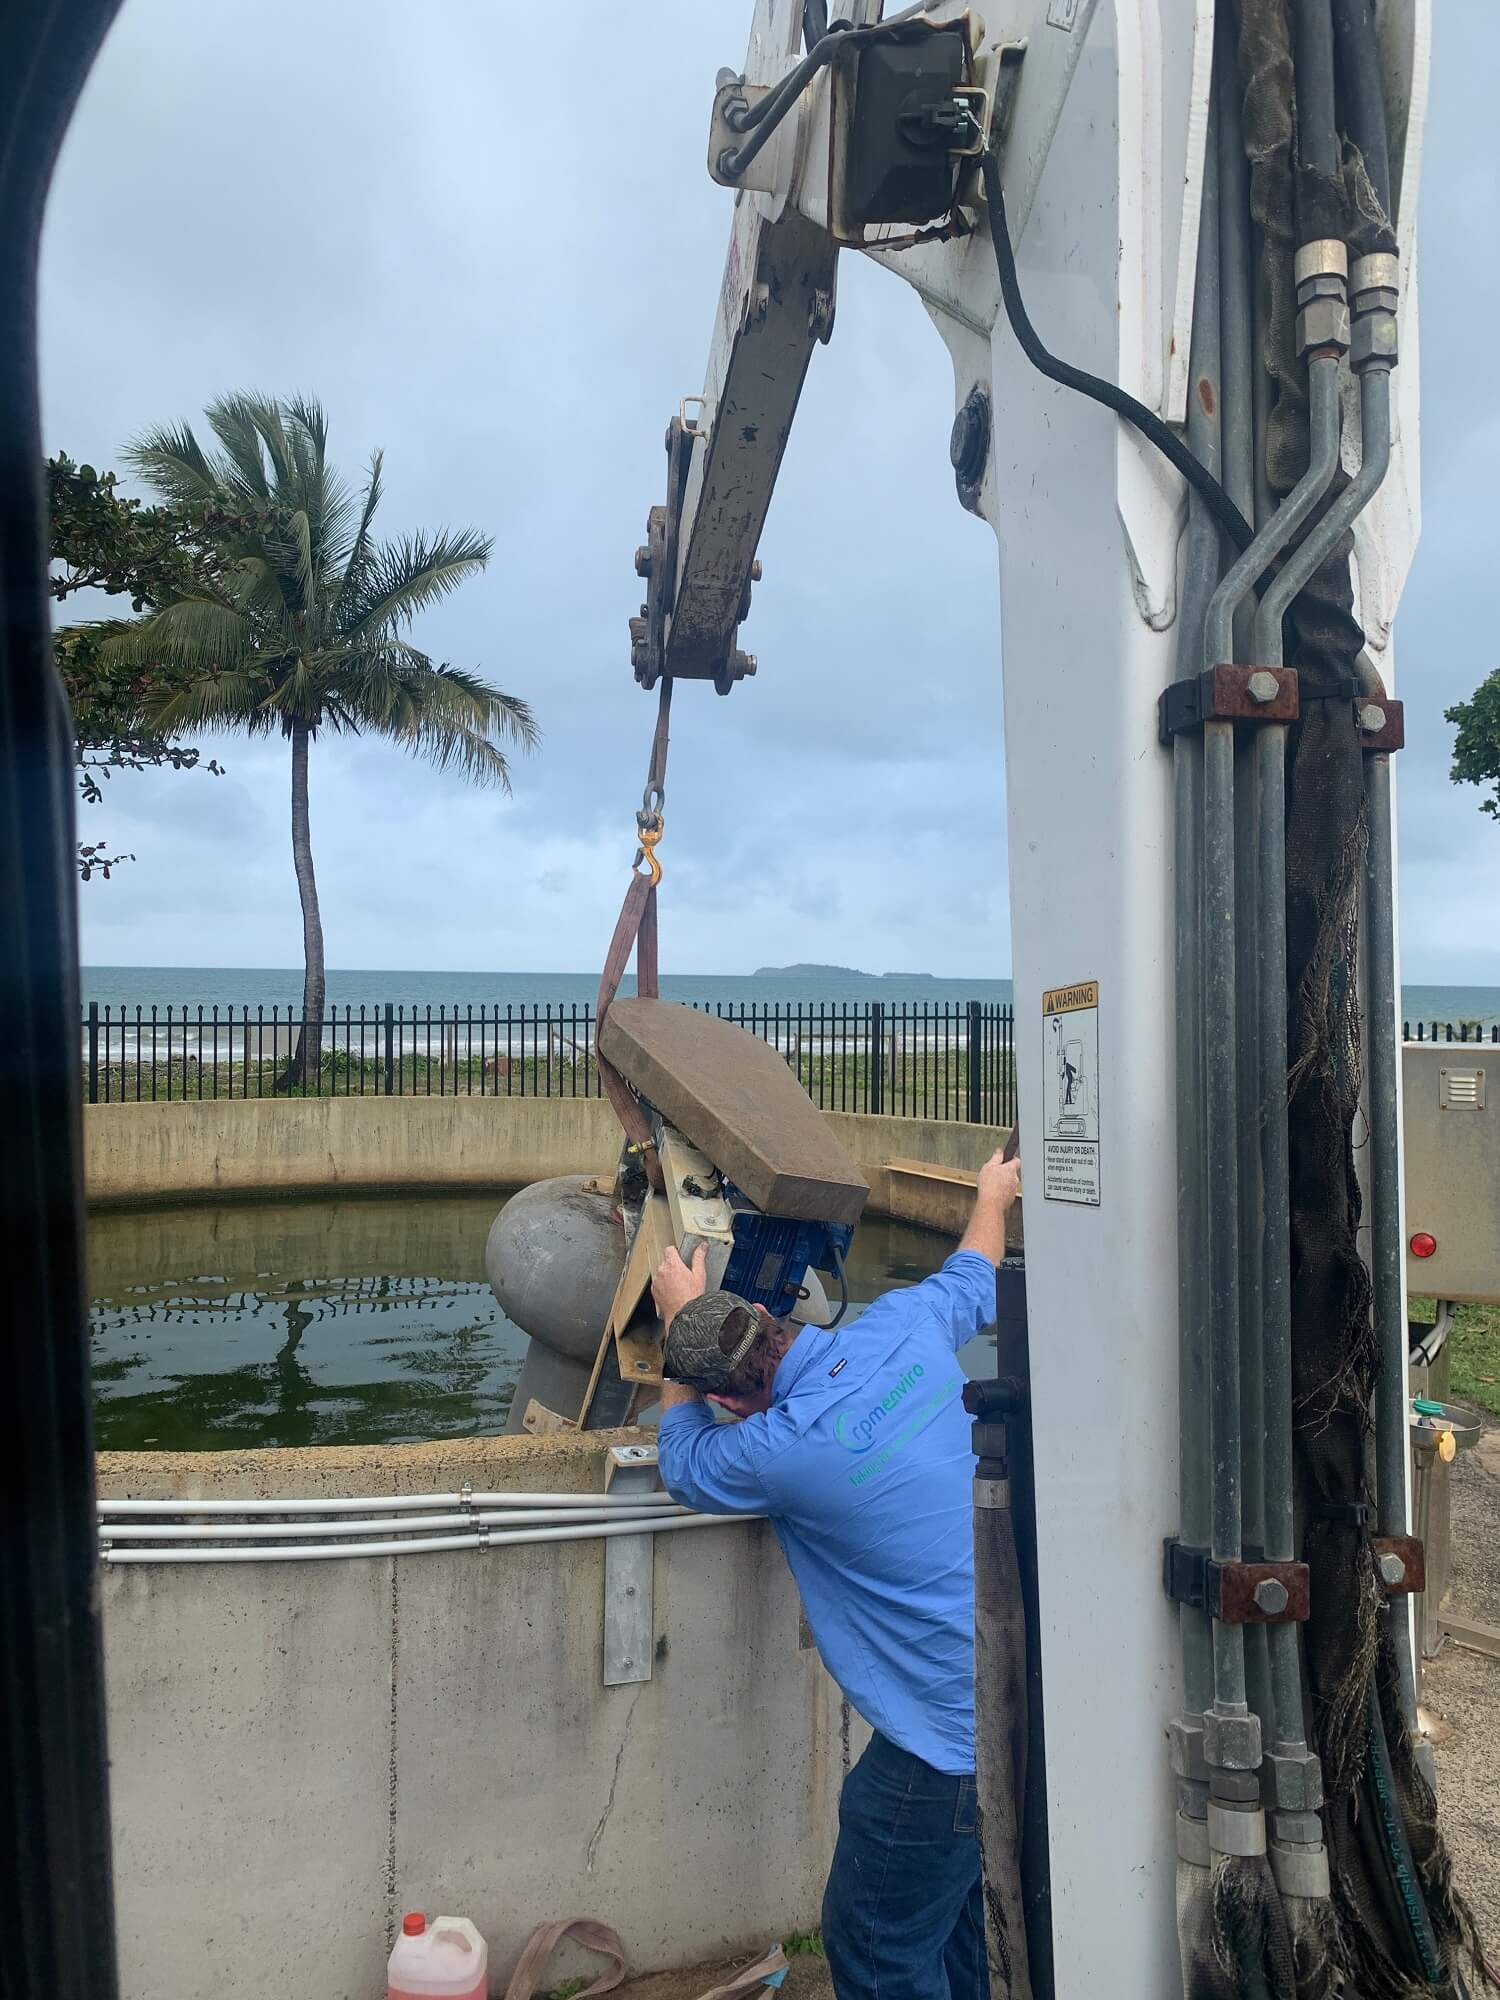 Machinery in action by Wet Tropics Plumbing Staff